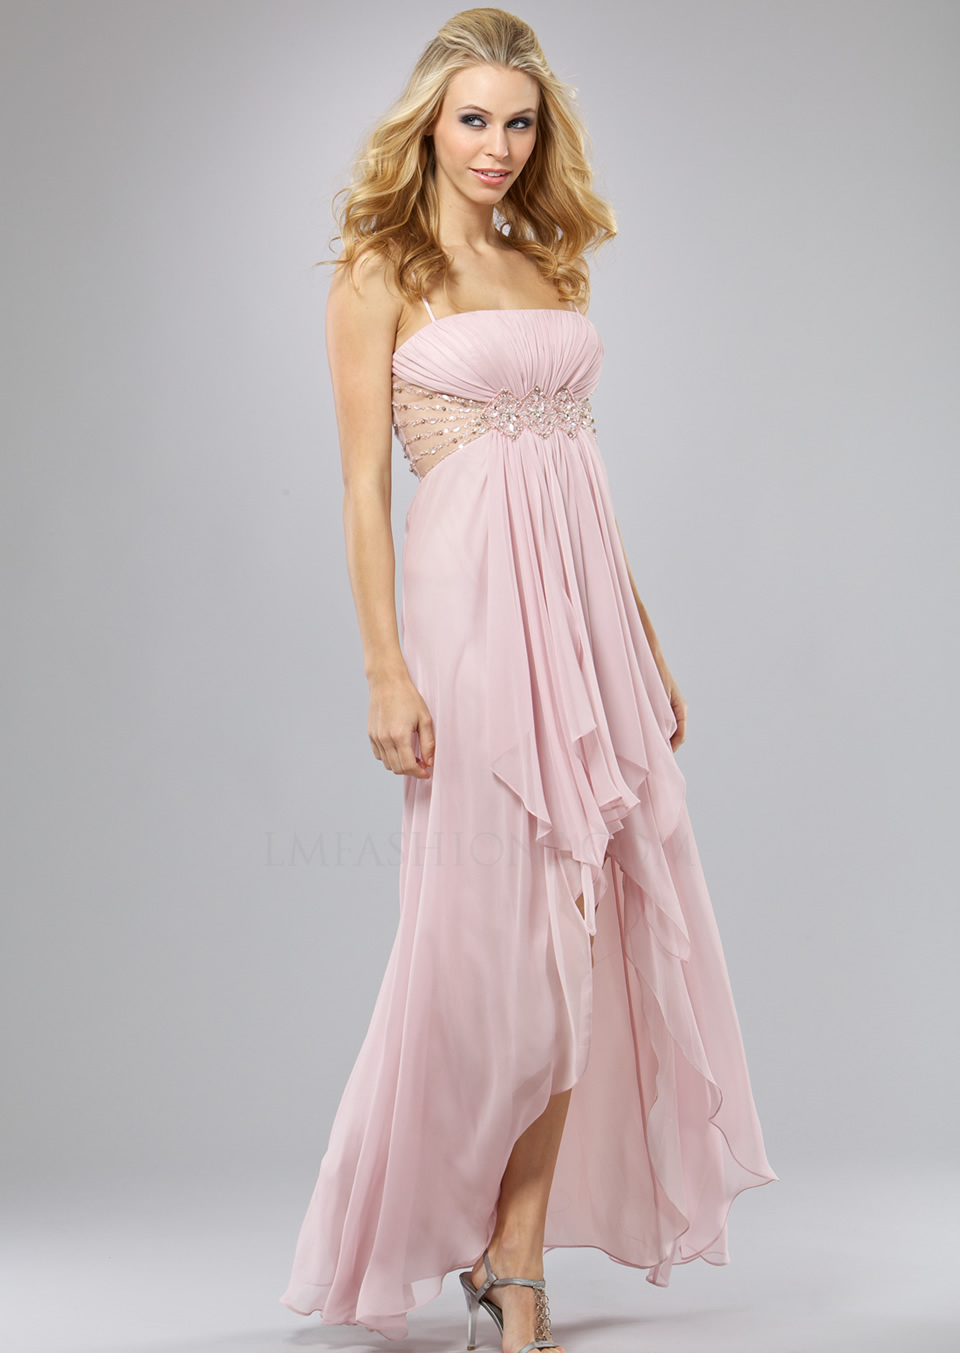 Find great deals on eBay for Plus Size Light Pink Dress in Elegant Dresses for Women. Shop with confidence.